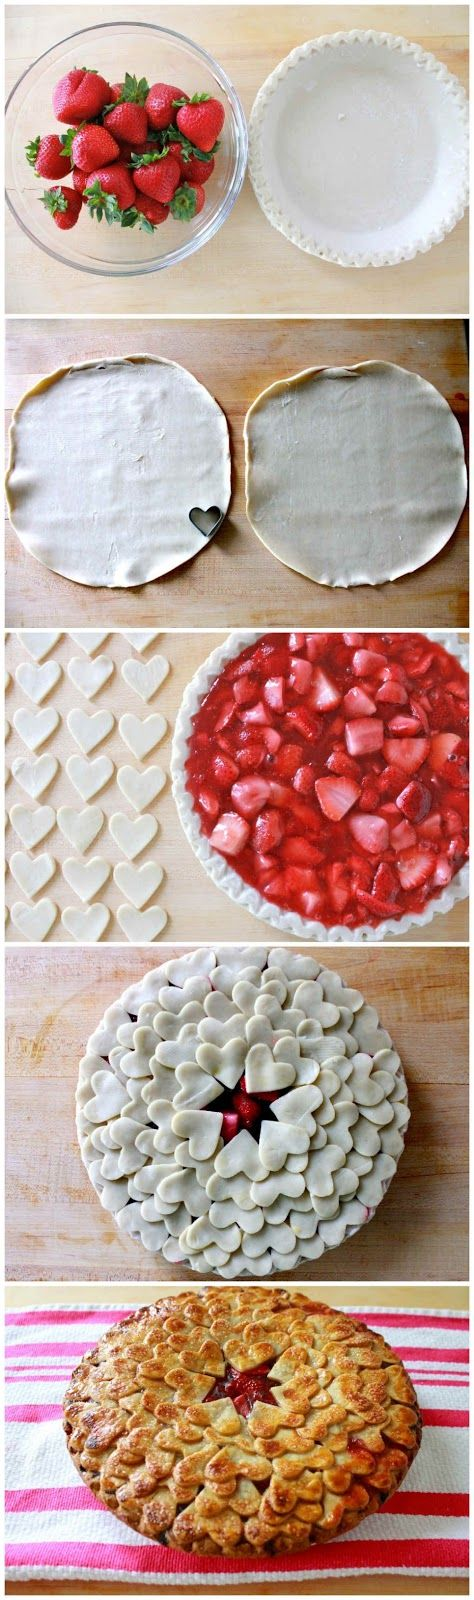 -Simply beautiful heart pie crust